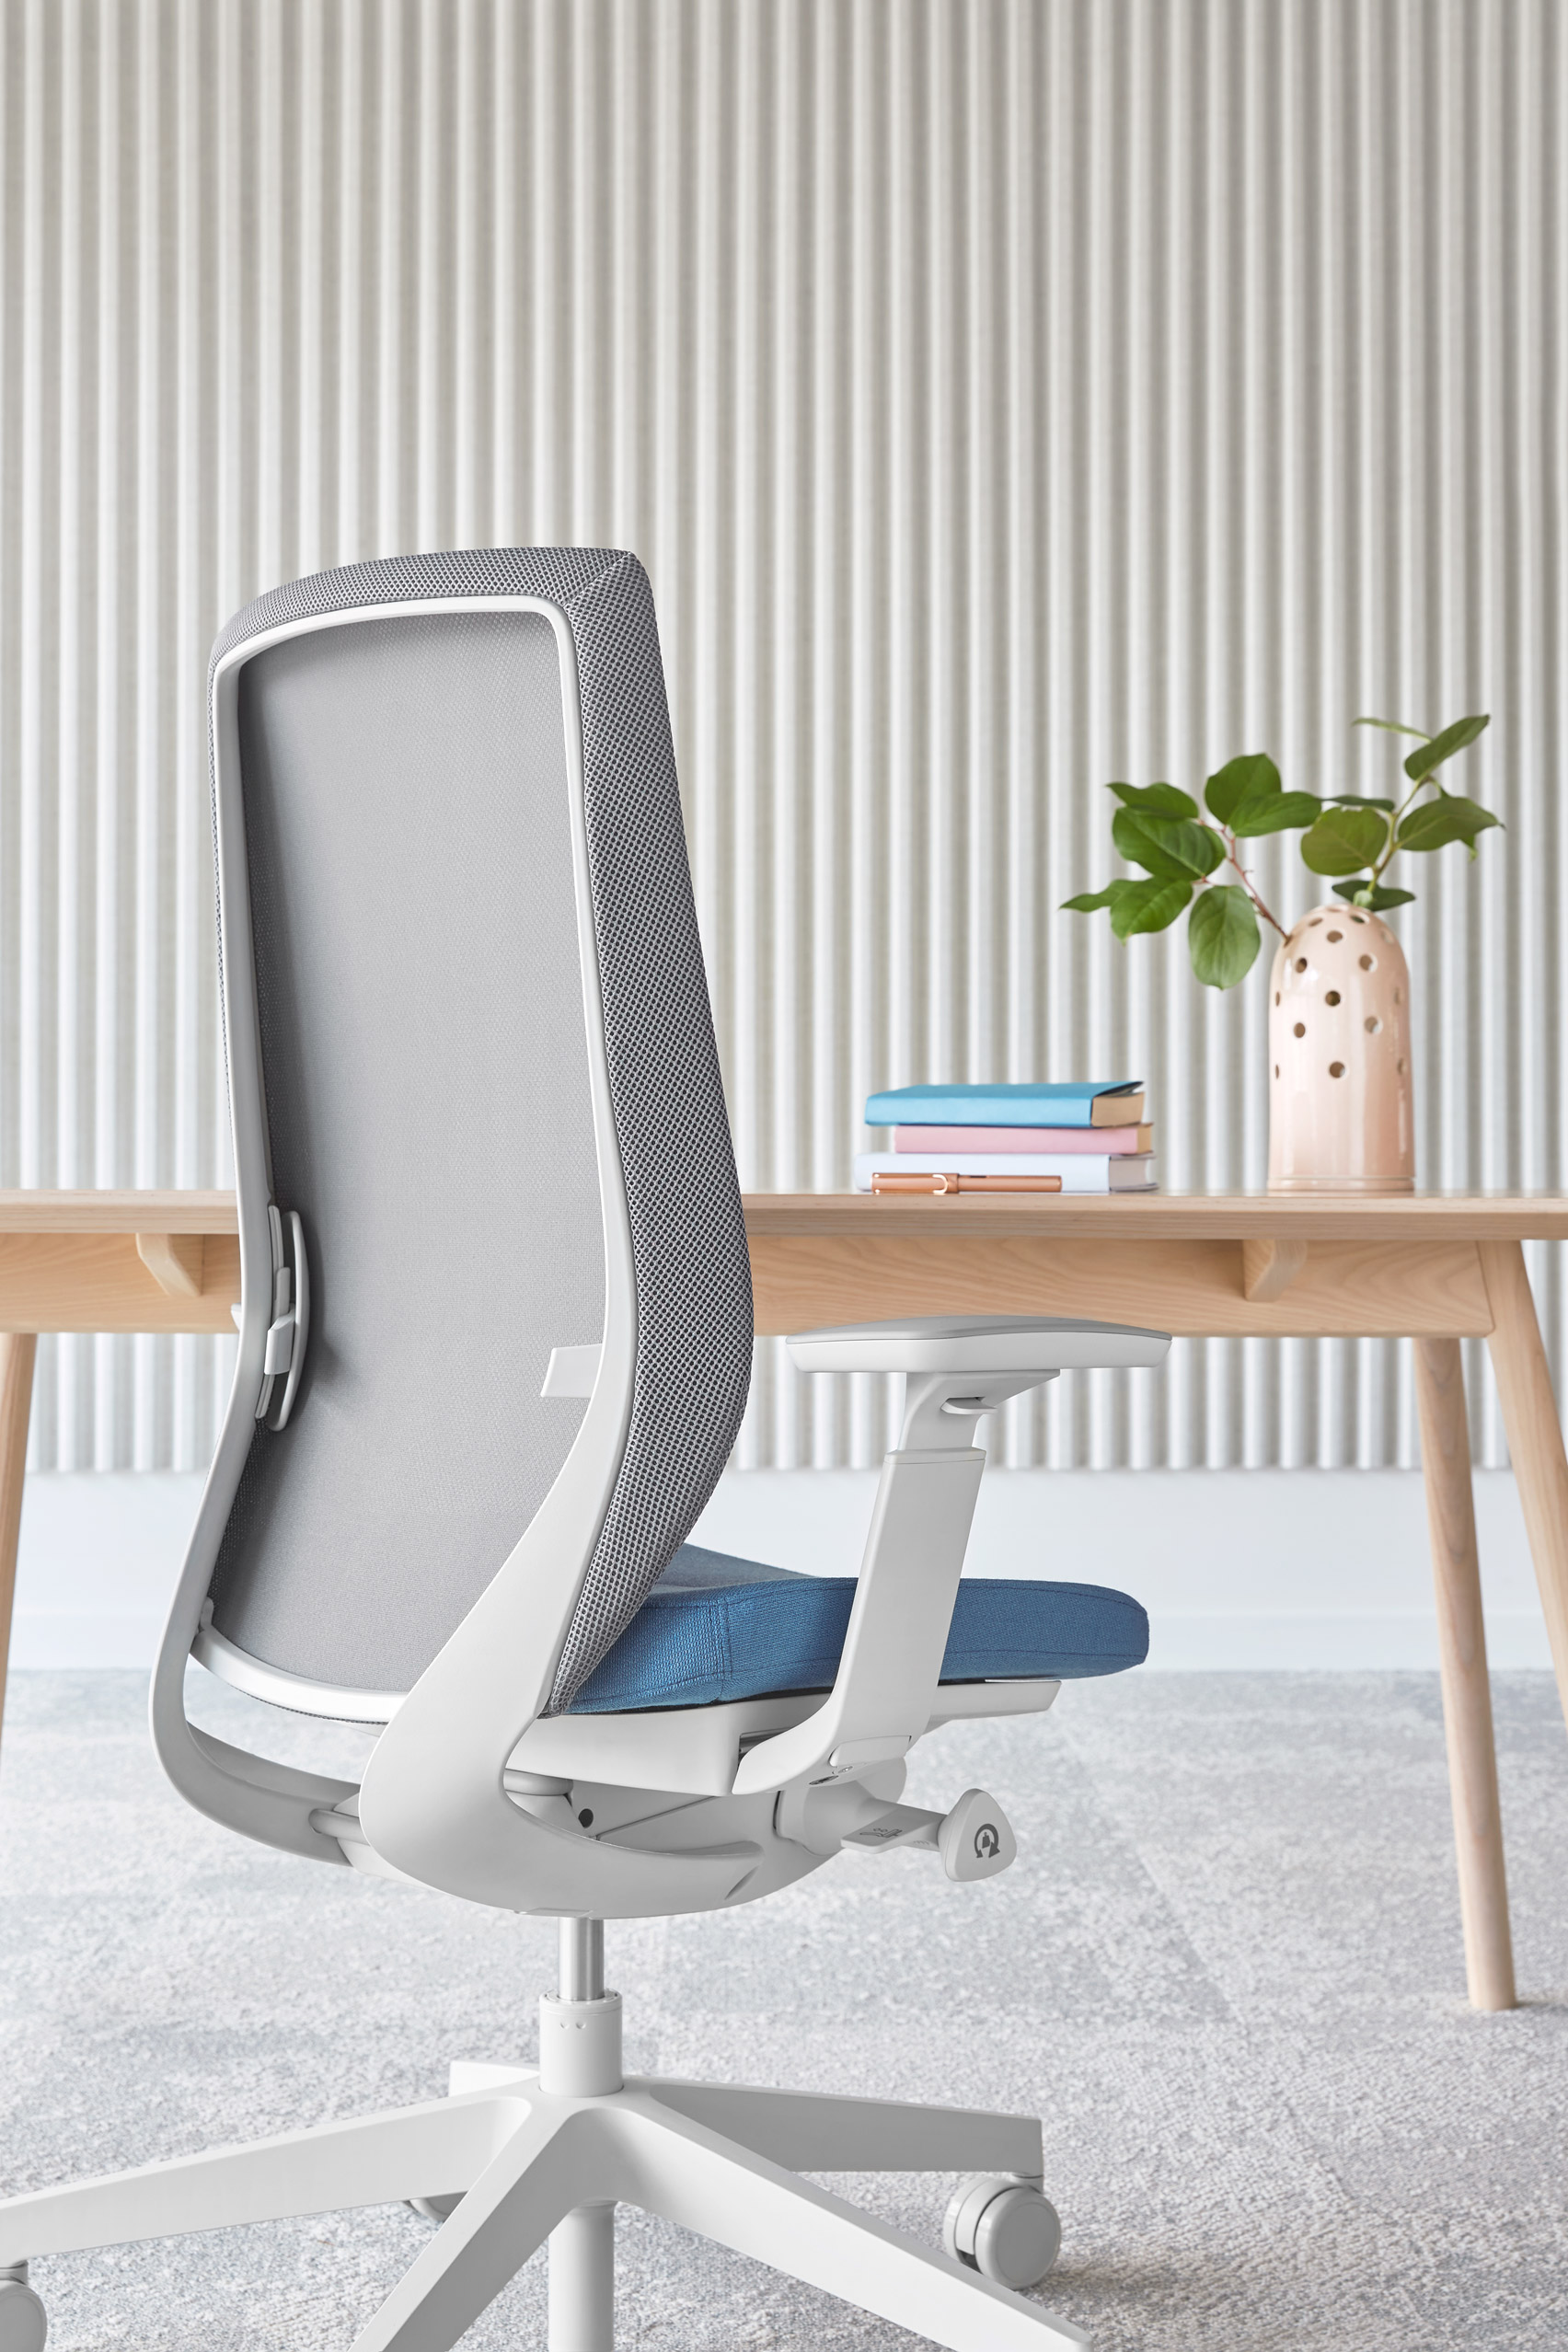 An office chair with a mesh backrest and blue seat